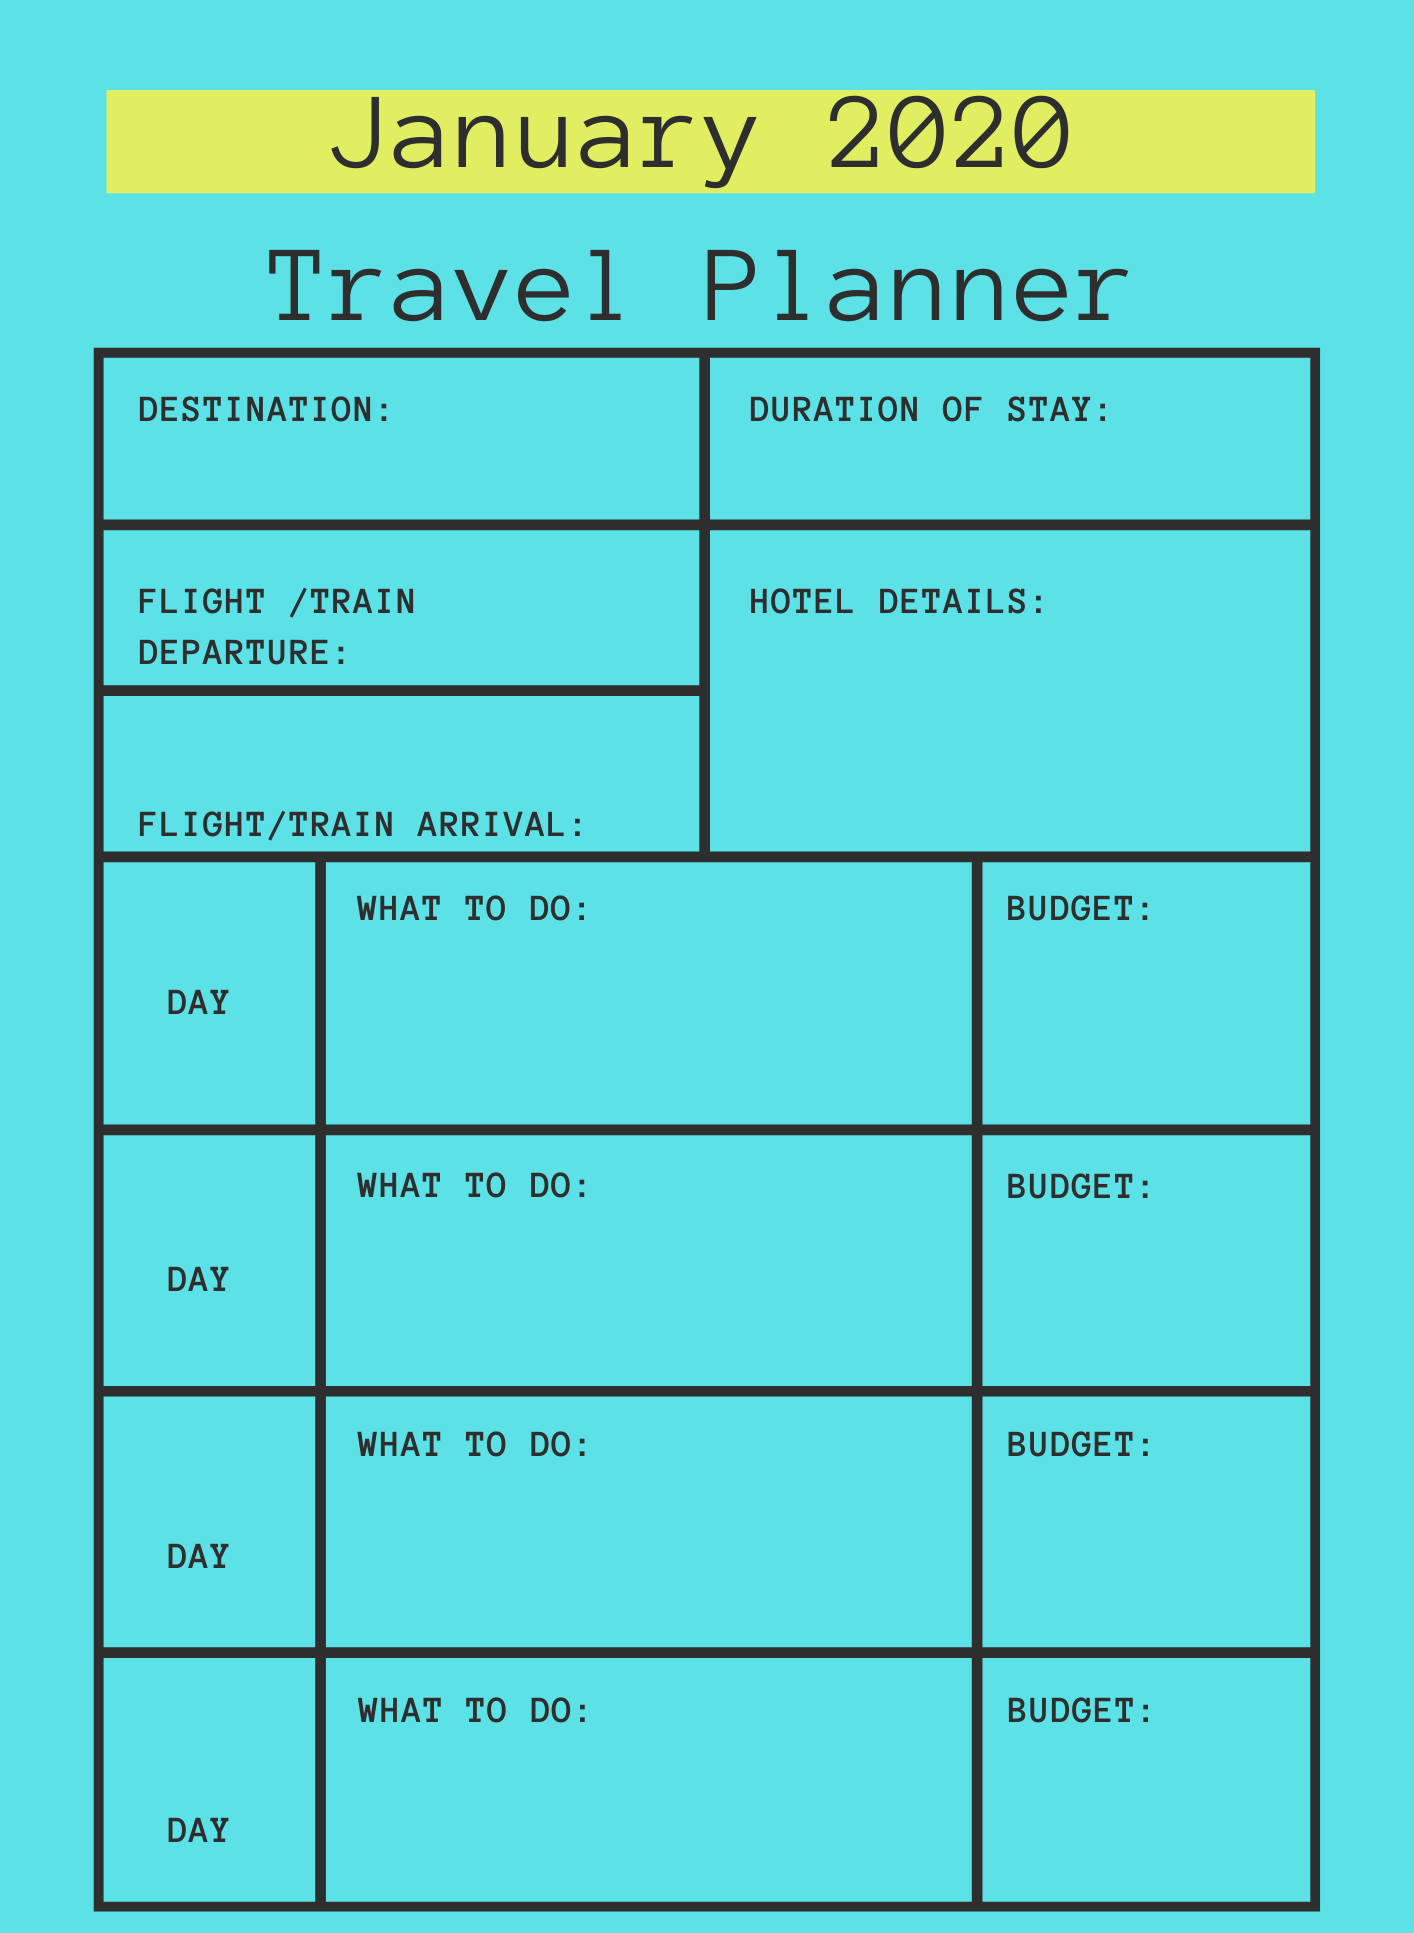 January 2020 Printable Travel Planner